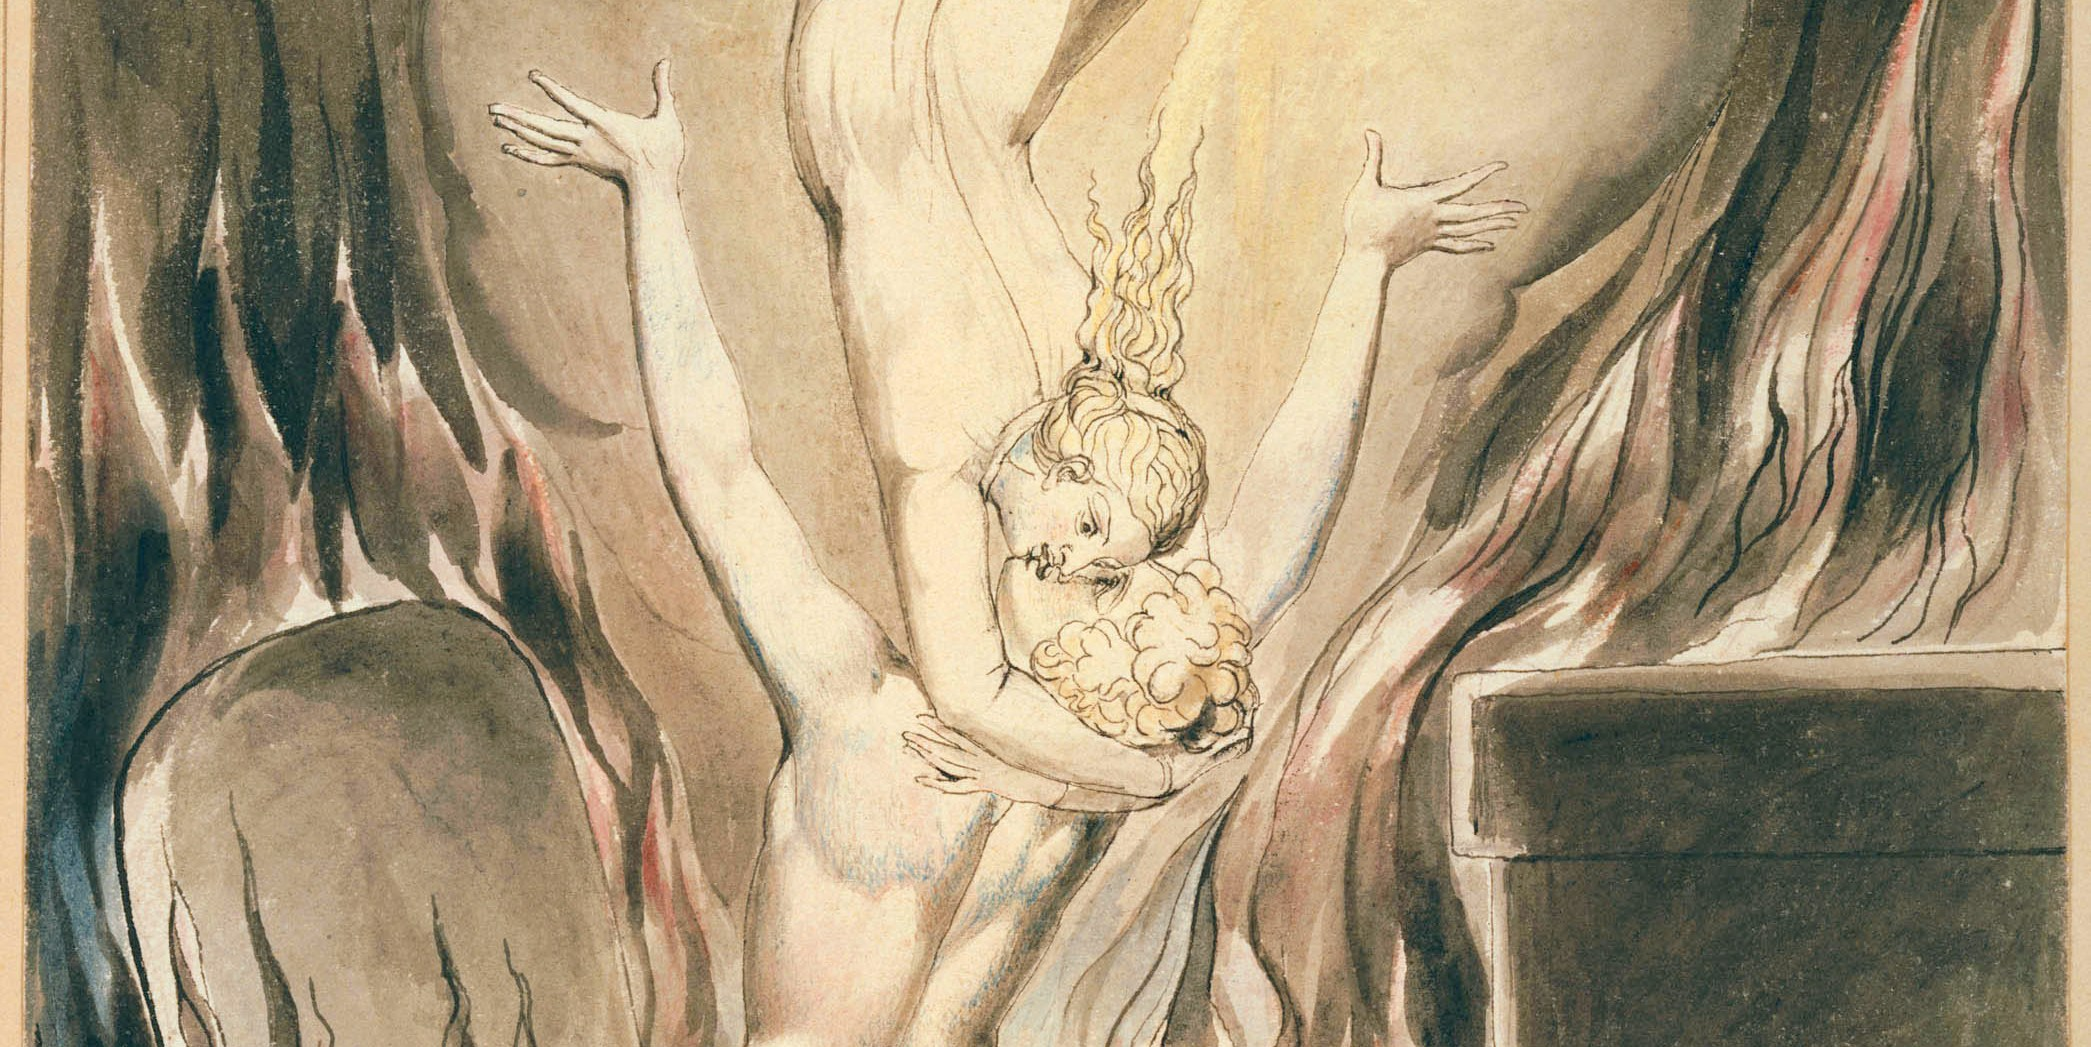 William Blake's painting of the soul reuniting with the body, represented by a woman embracing a man in a burning room